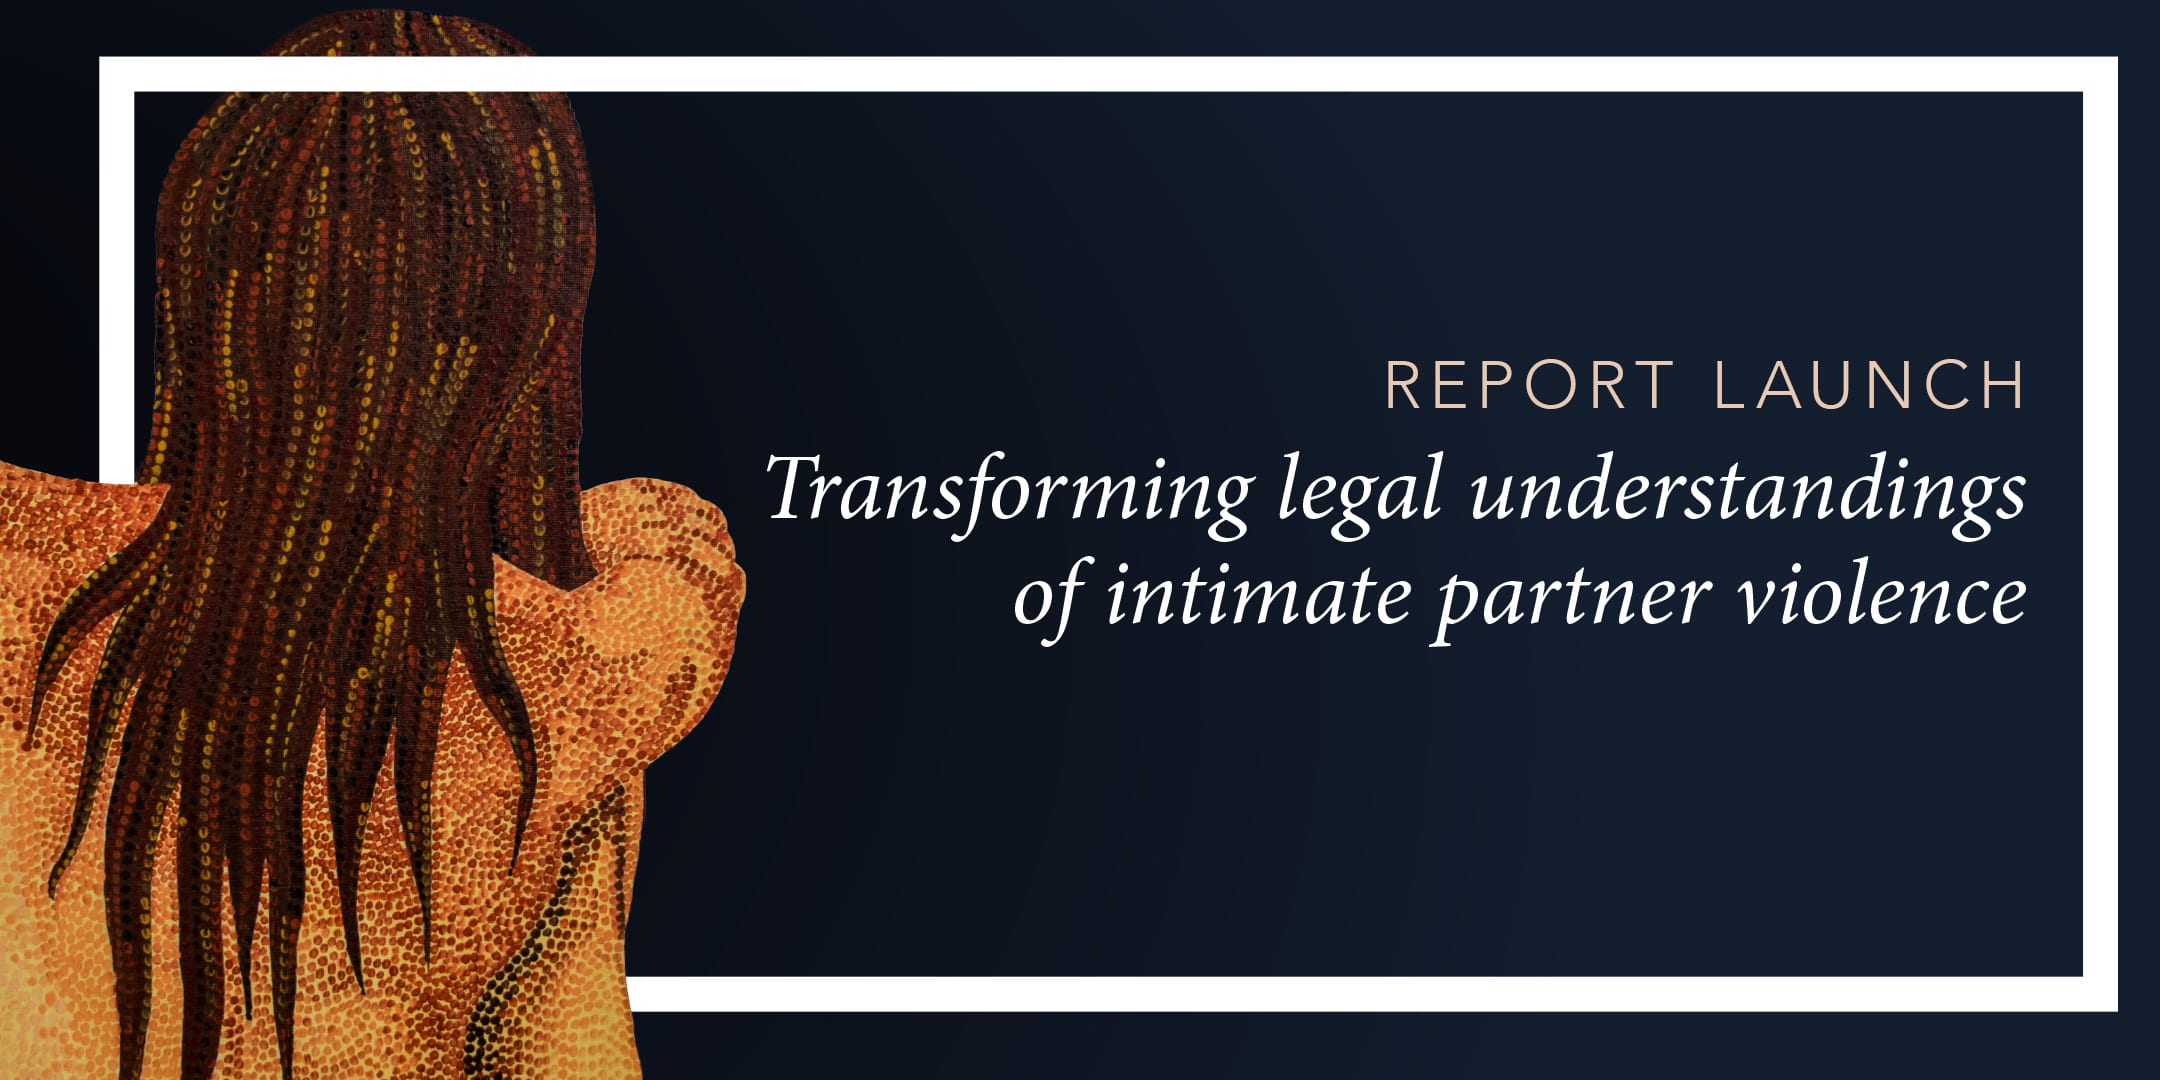 Report launch: Transforming legal understandings of intimate partner violence